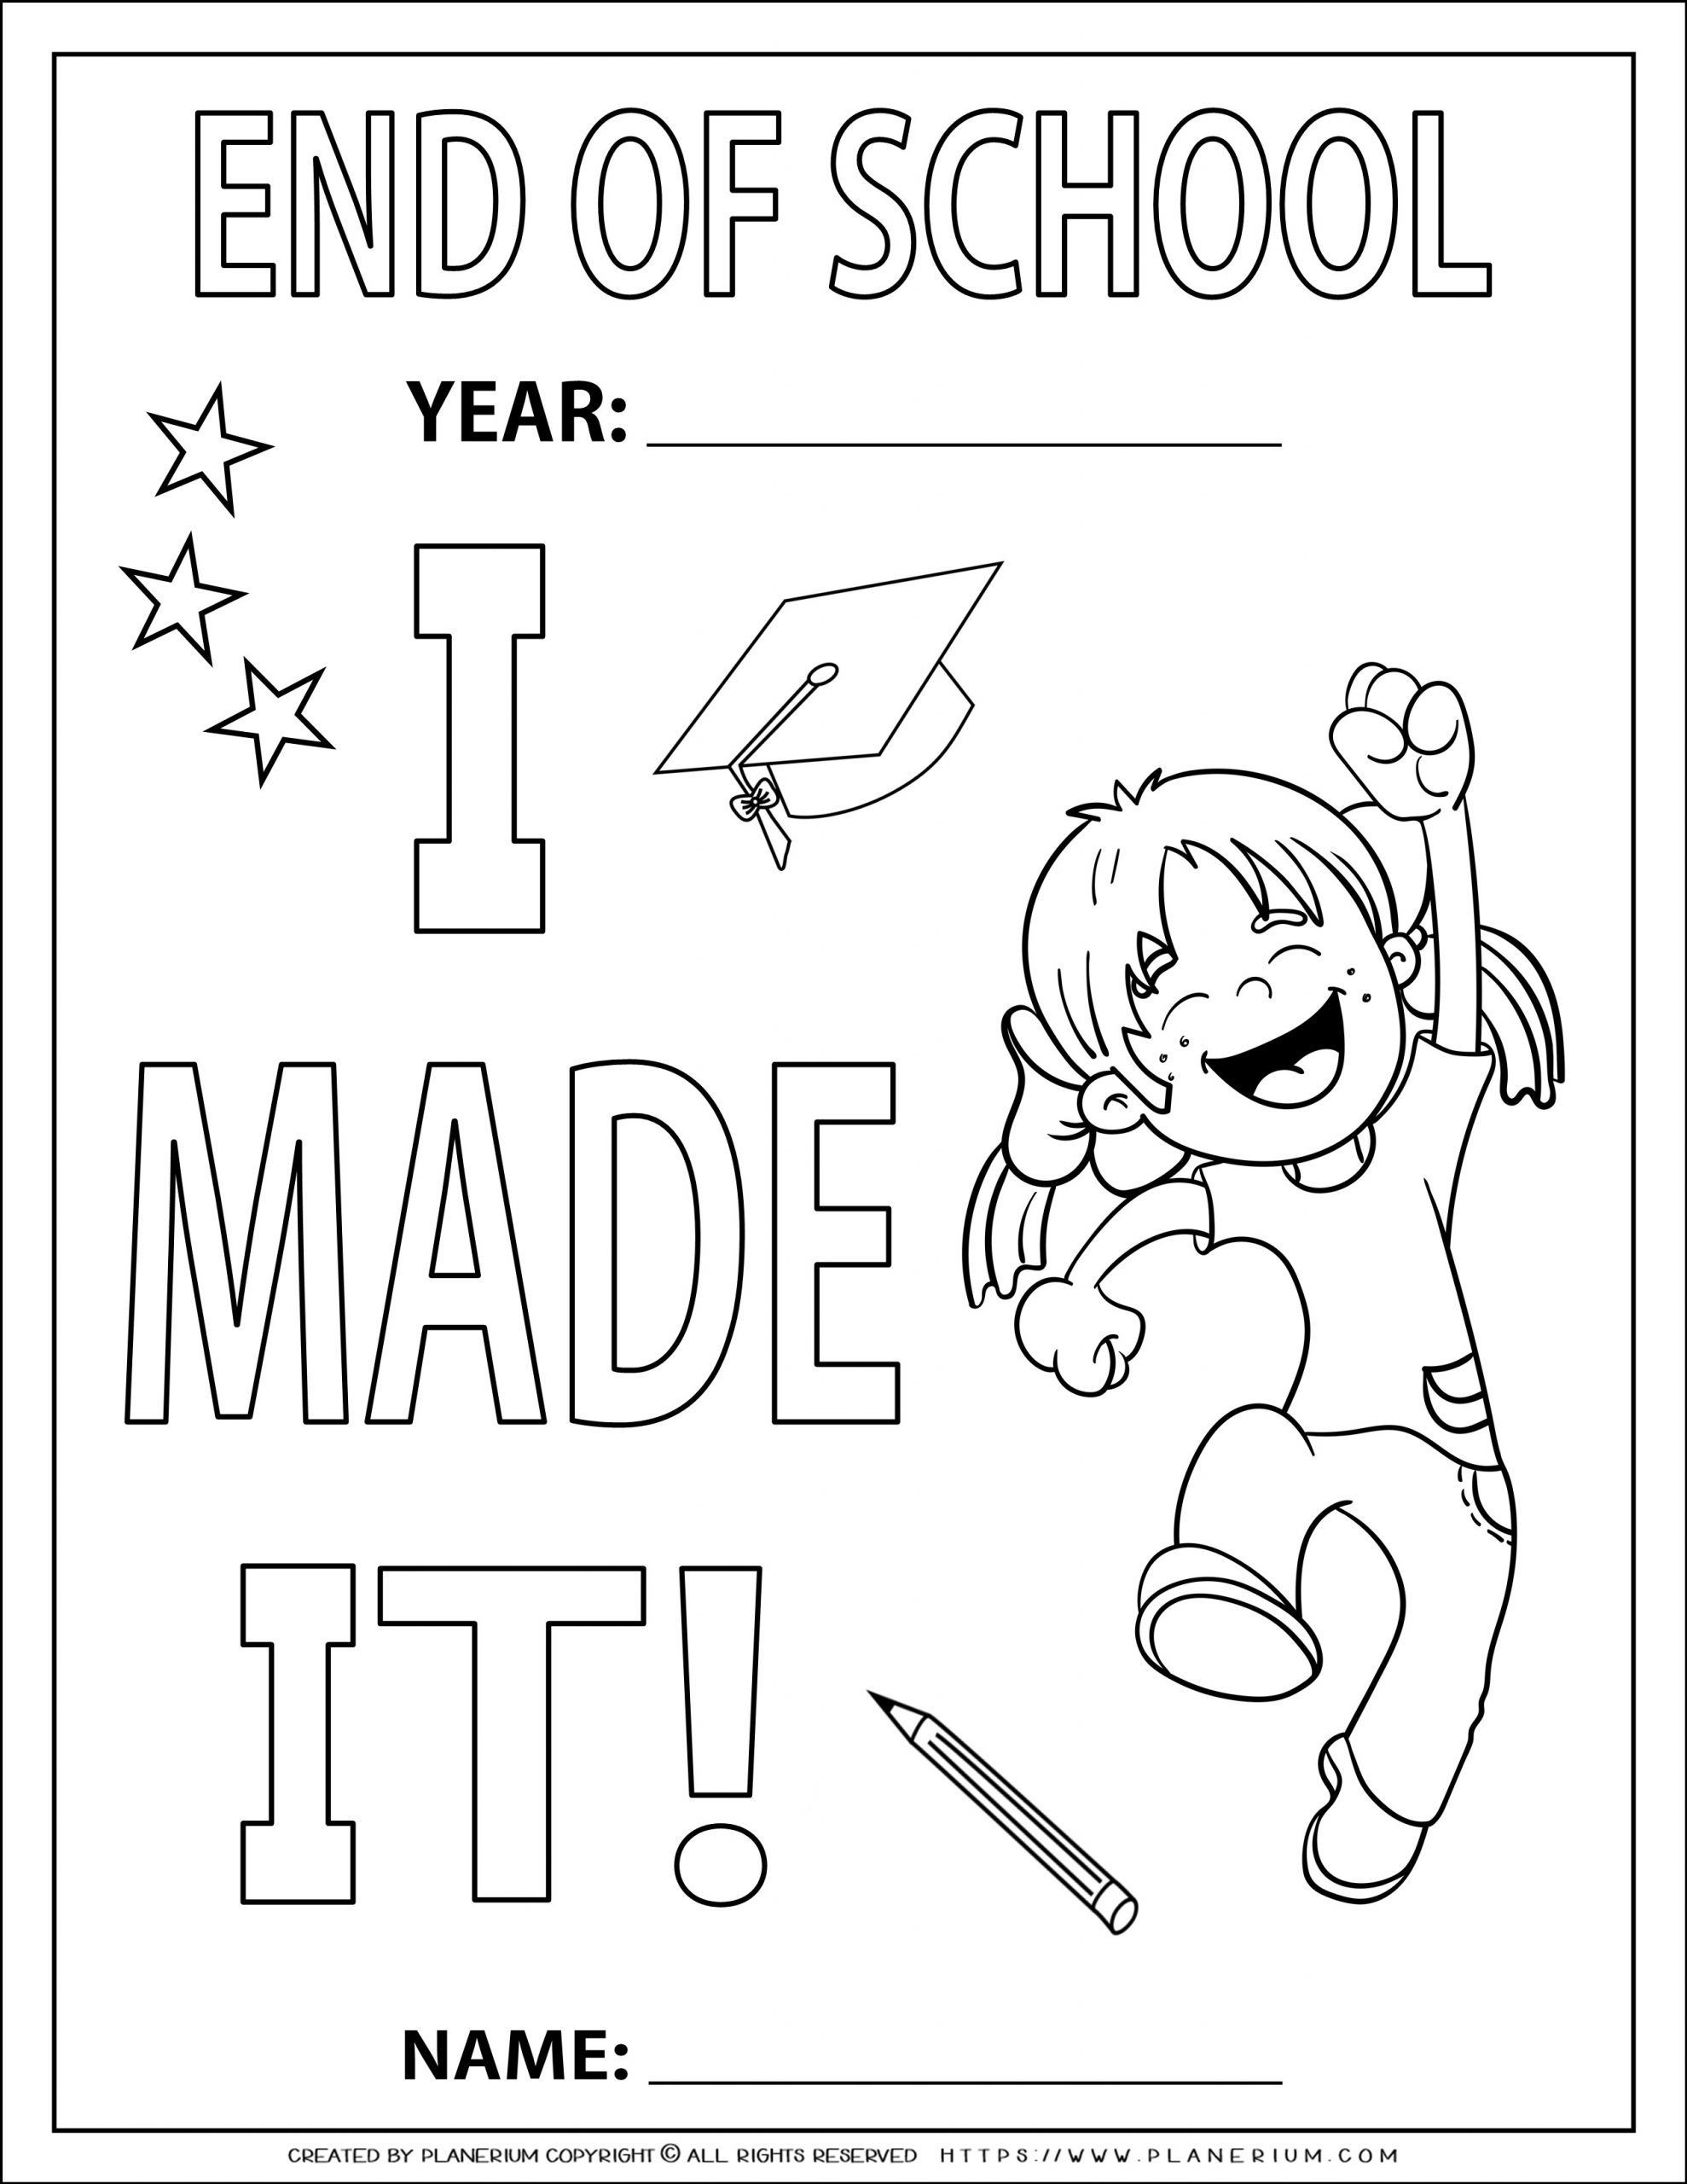 End Of Year Coloring Page I Made It For A Girl Planerium School Coloring Pages Coloring Pages First Grade Teachers [ 2560 x 1978 Pixel ]